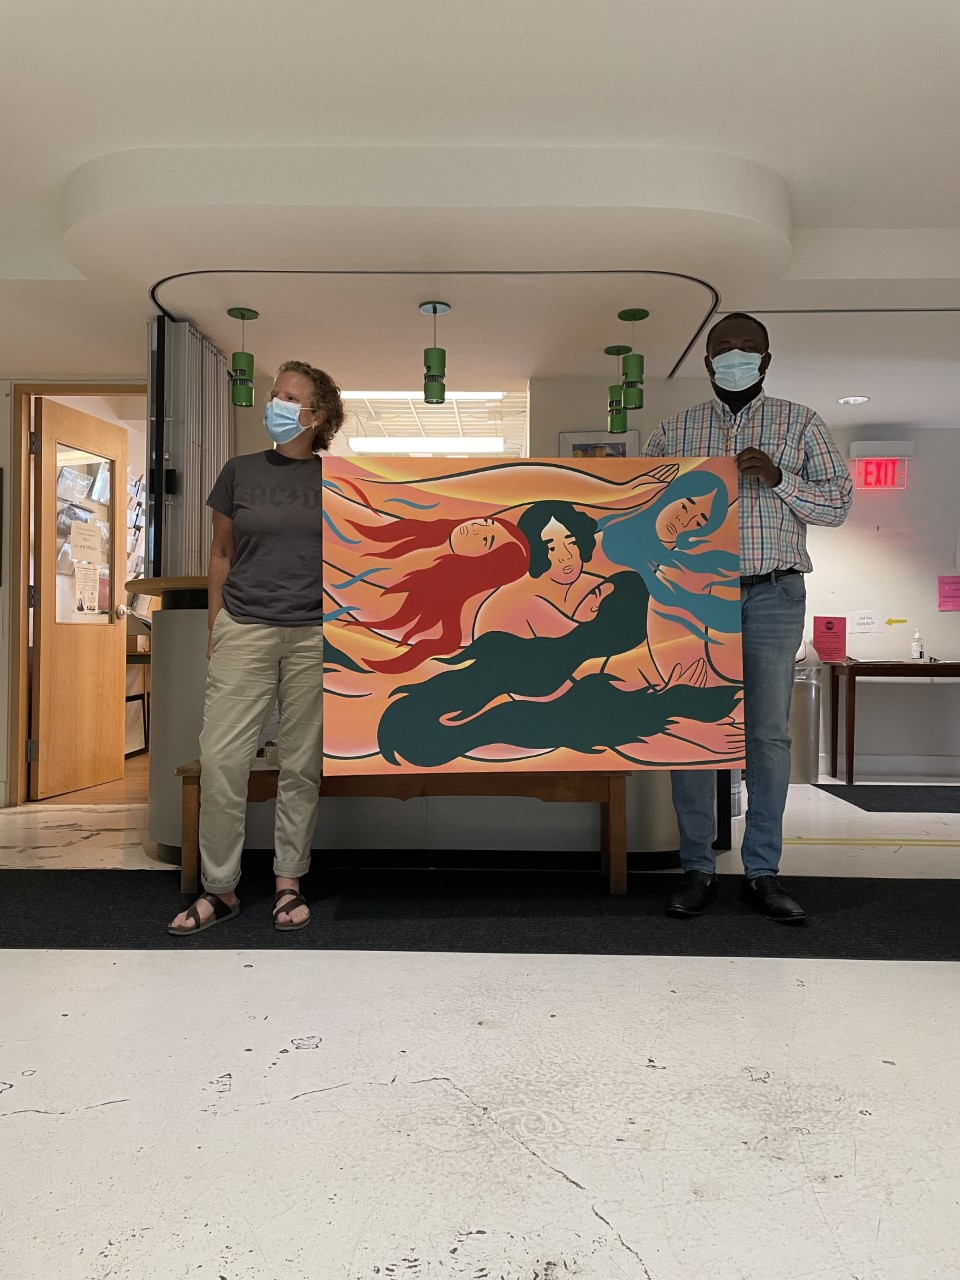 2 PEOPLE STANDING IN OHOTO HOLDING AN ART PIECE